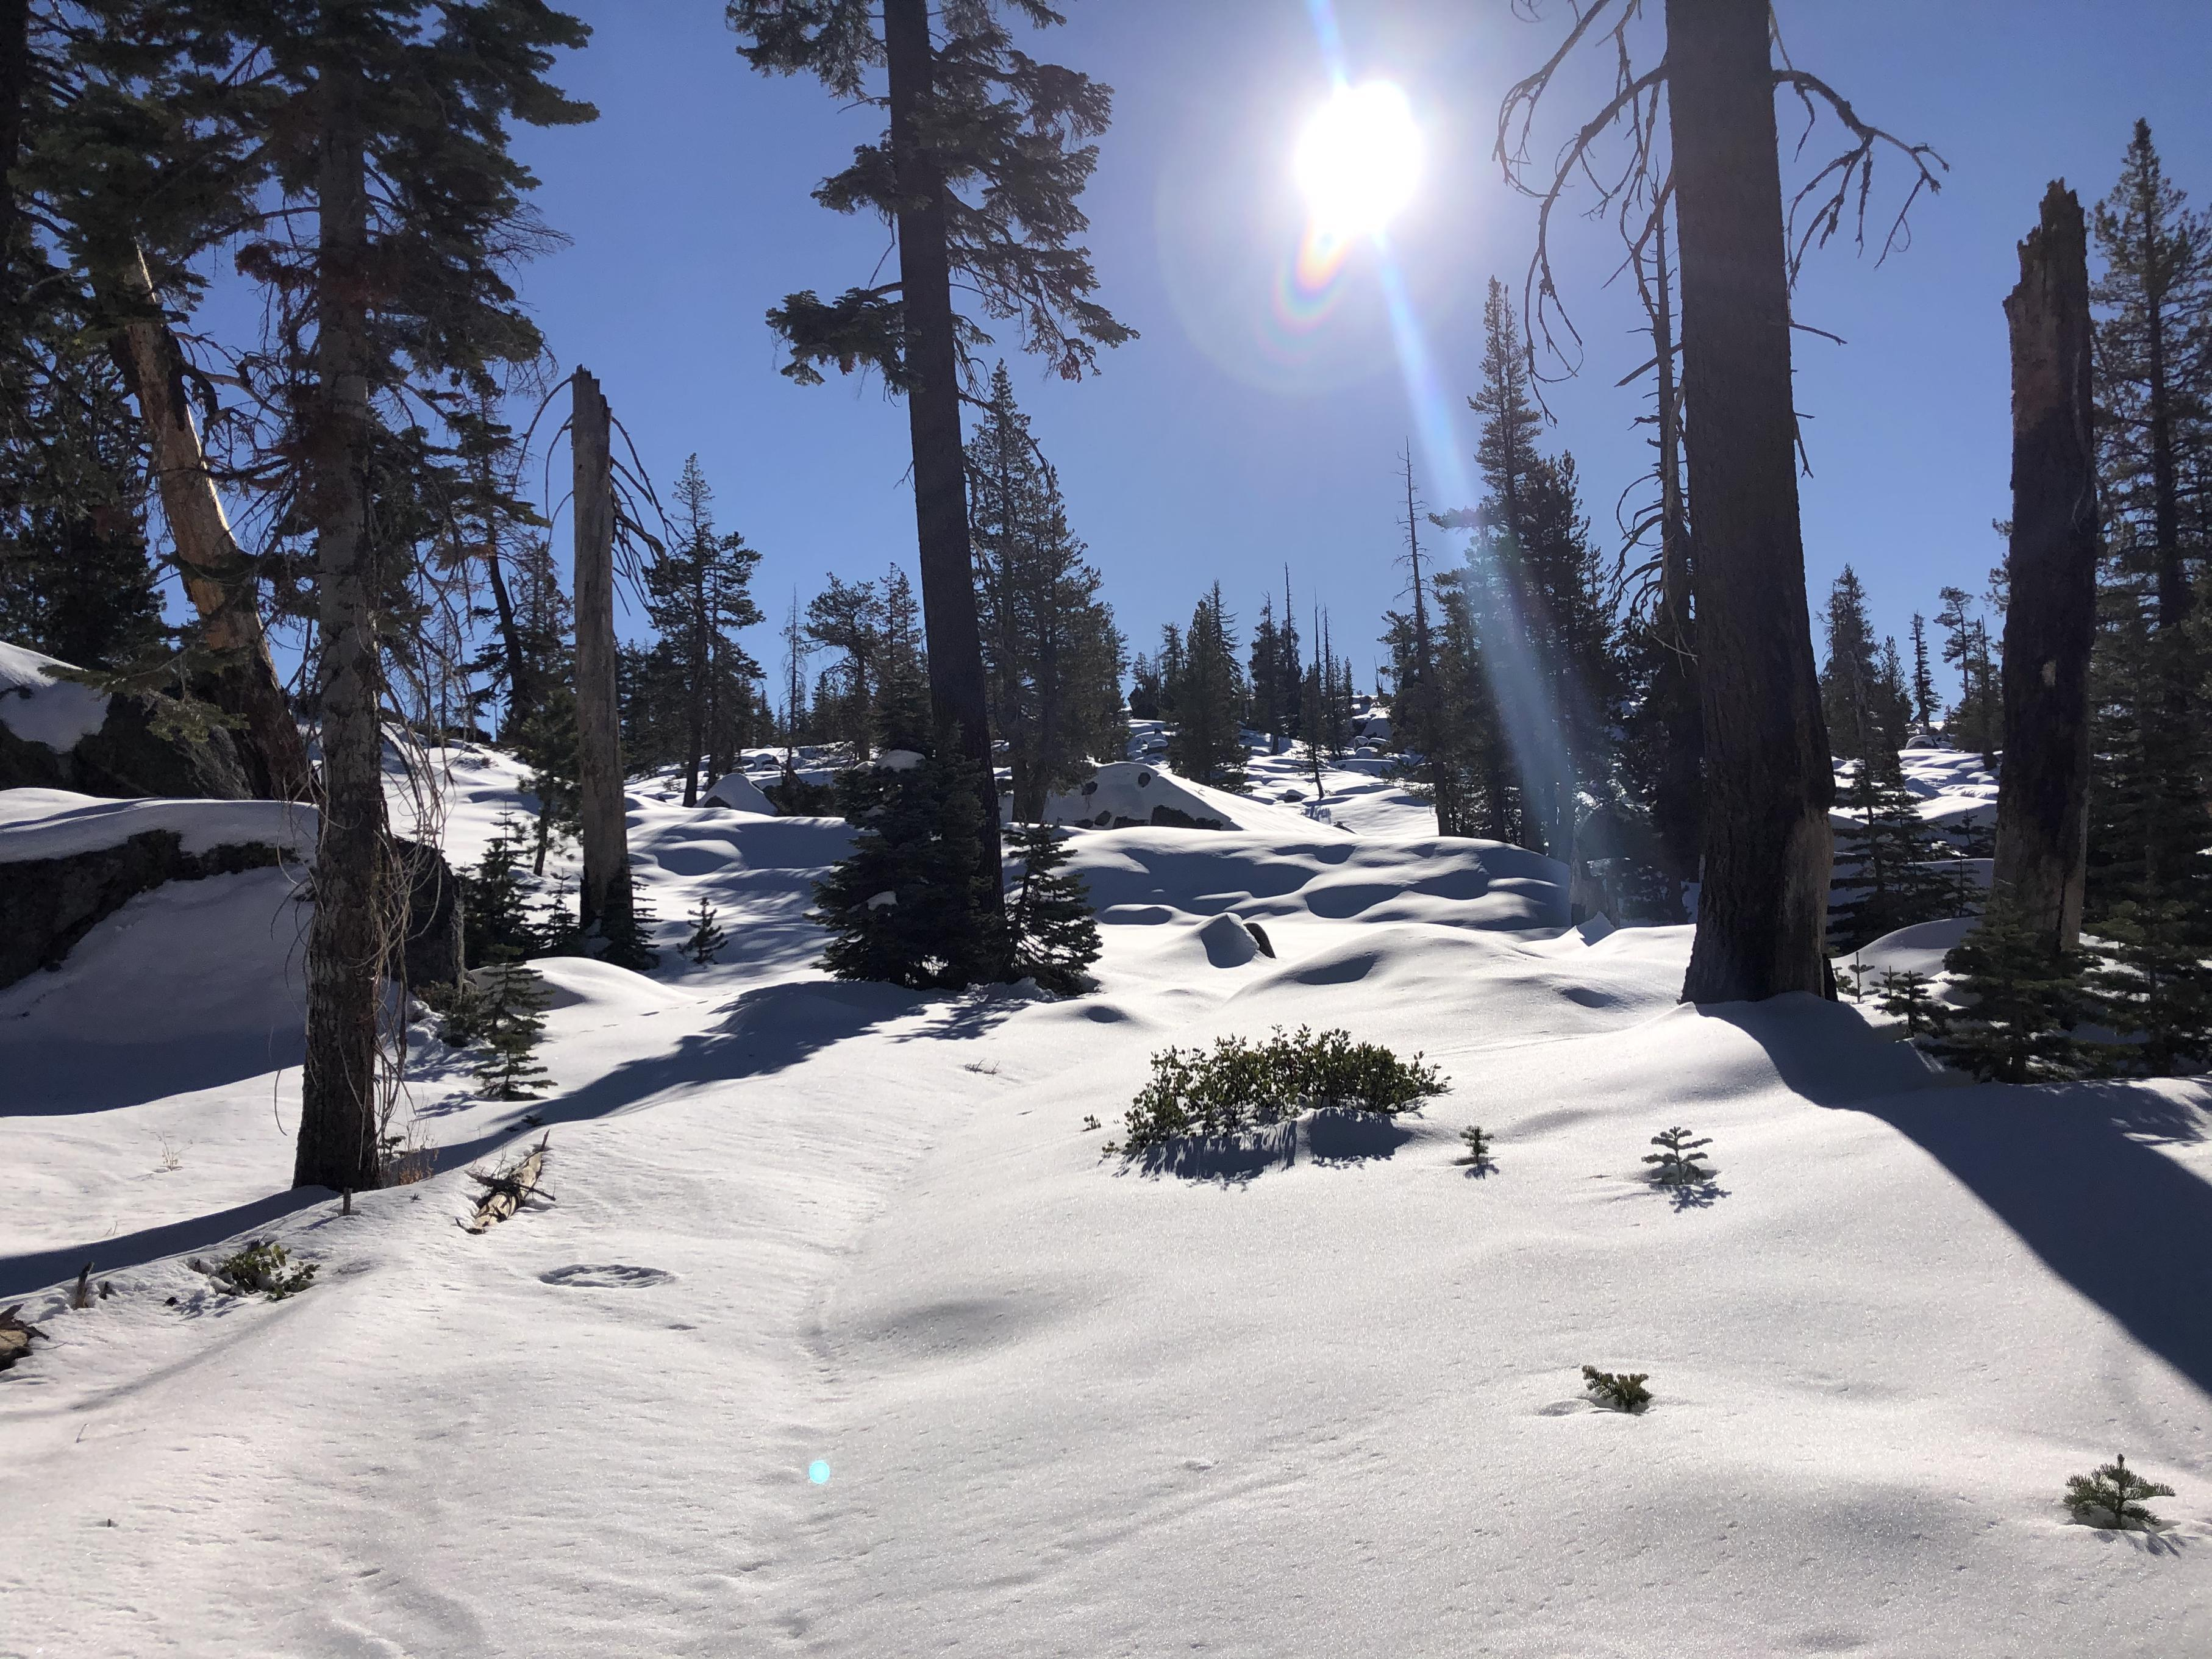 Emigrant Wilderness in the snow